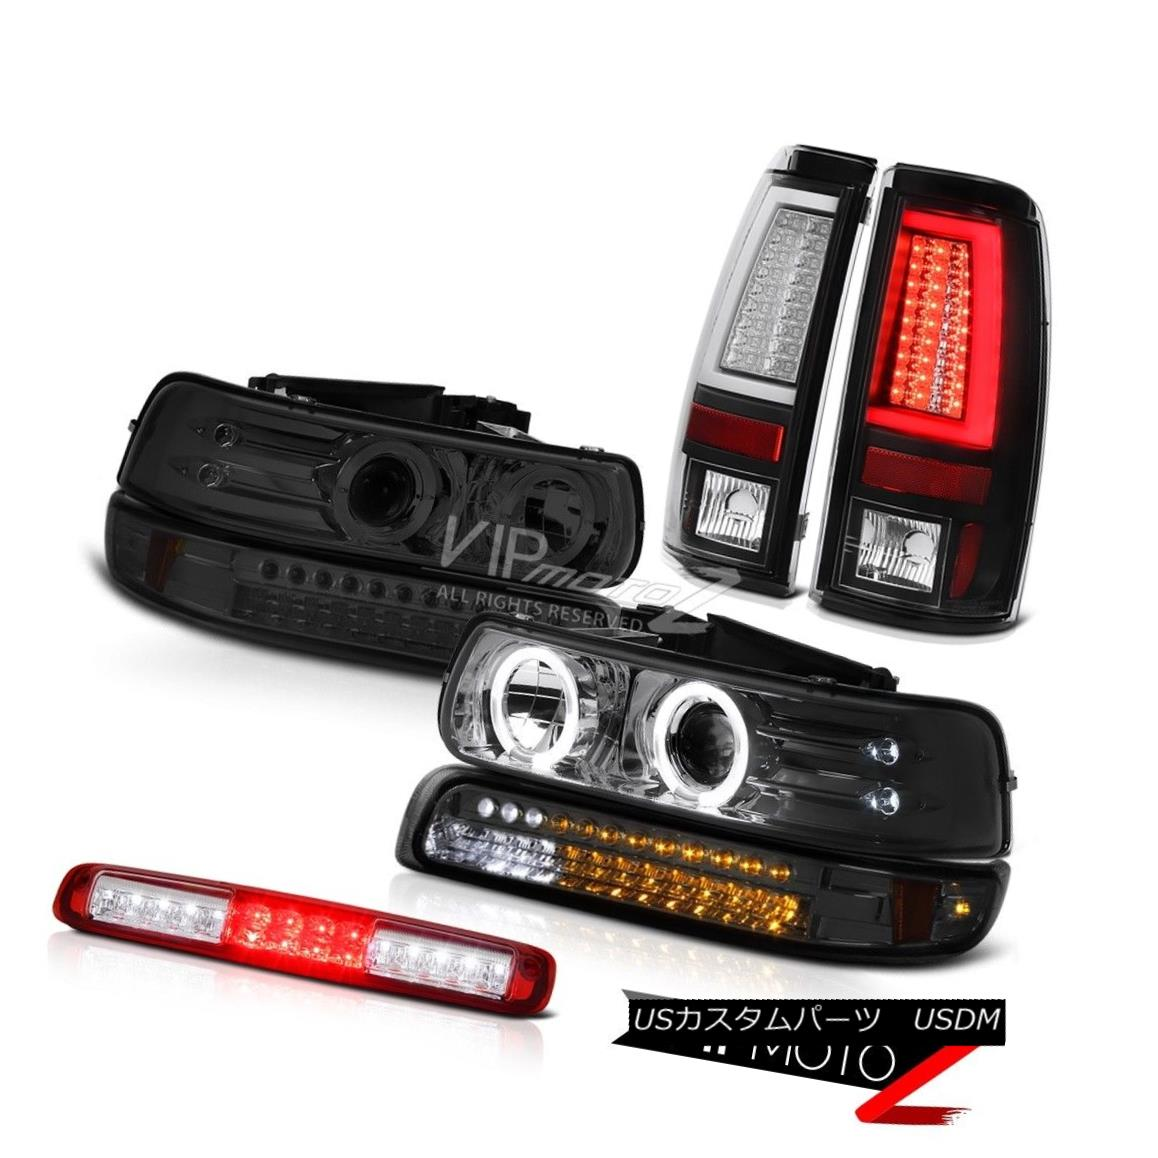 ヘッドライト 99-02 Silverado LTZ Tail Lights Bumper Lamp Headlights Roof Brake LED Halo Ring 99-02 Silverado LTZテールライトバンパーランプヘッドライトルーフブレーキLED Haloリング